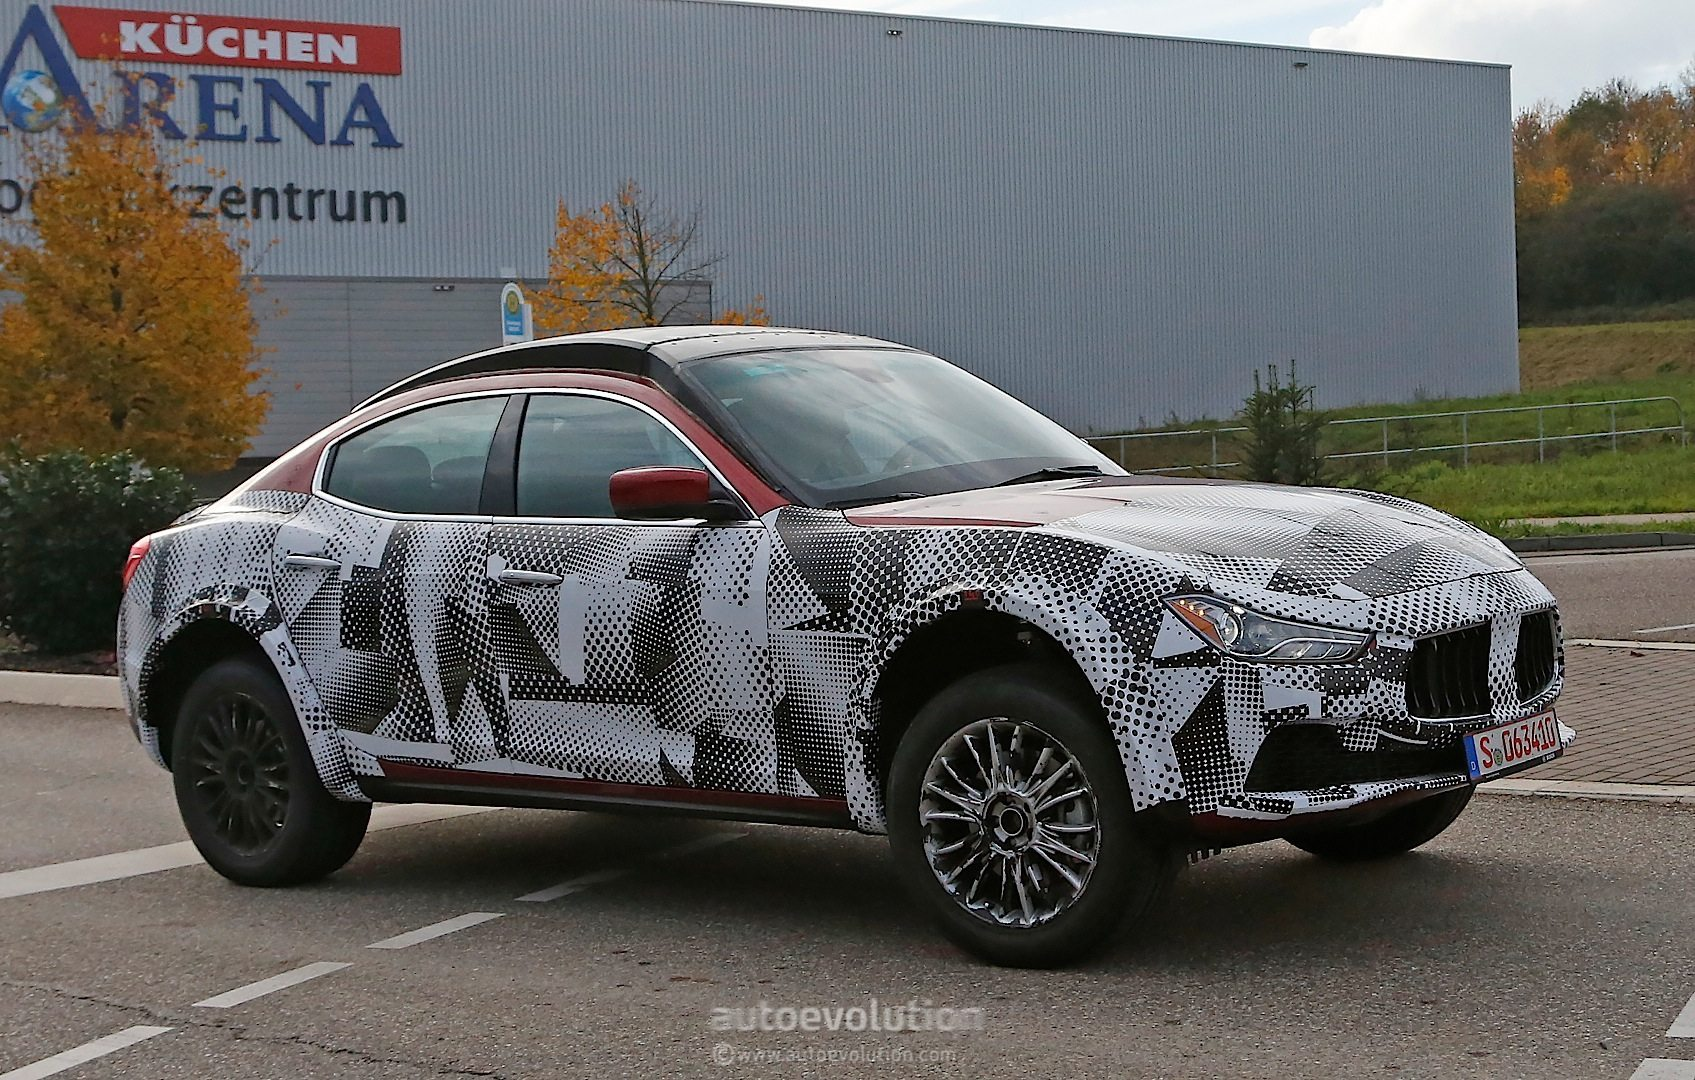 Jaguar Xf besides Jaguar F Pace moreover Seat Ateca Fr Ph together with Jaguar Xjr My Glhd Crop Hero moreover Maserati Suv Prototype Spied Up Close Photo Gallery. on jaguar f 2017 pace reviews